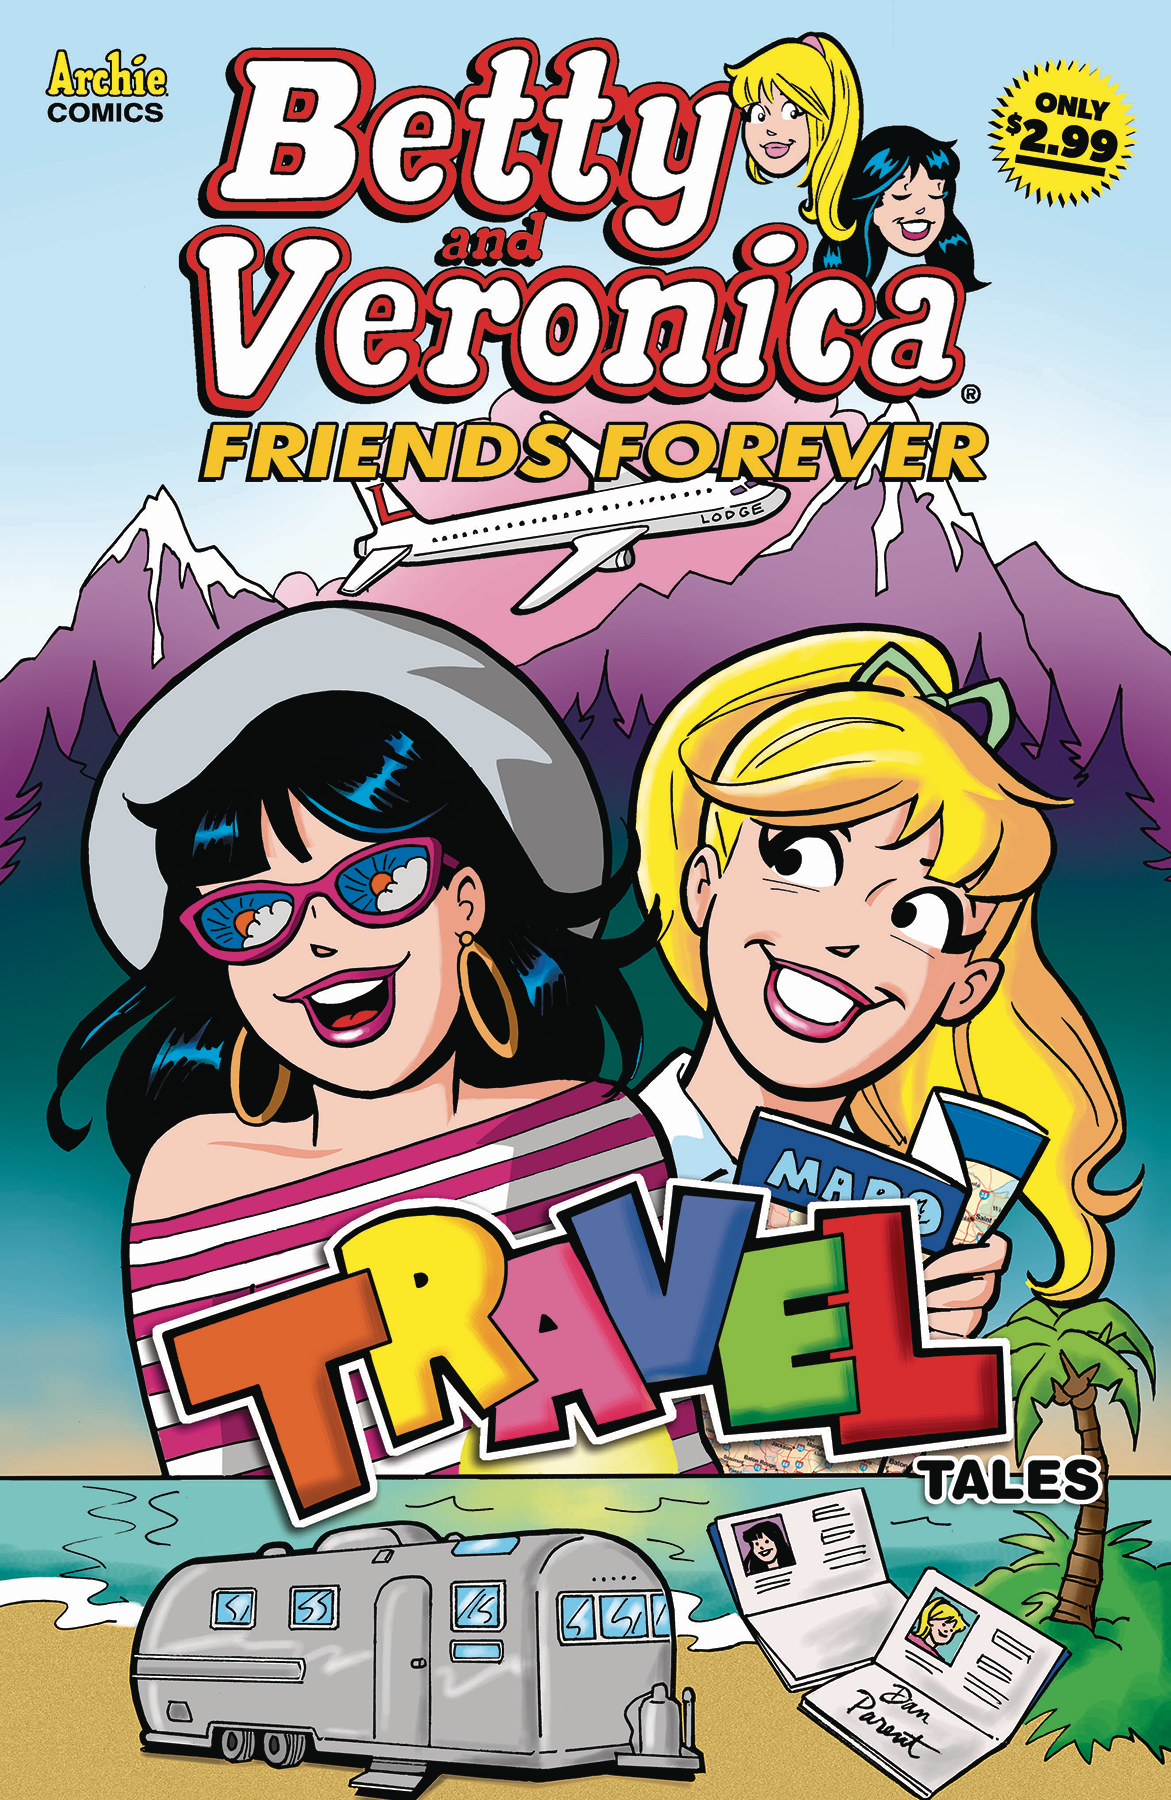 BETTY AND VERONICA FRIENDS FOREVER TRAVEL TALES #2